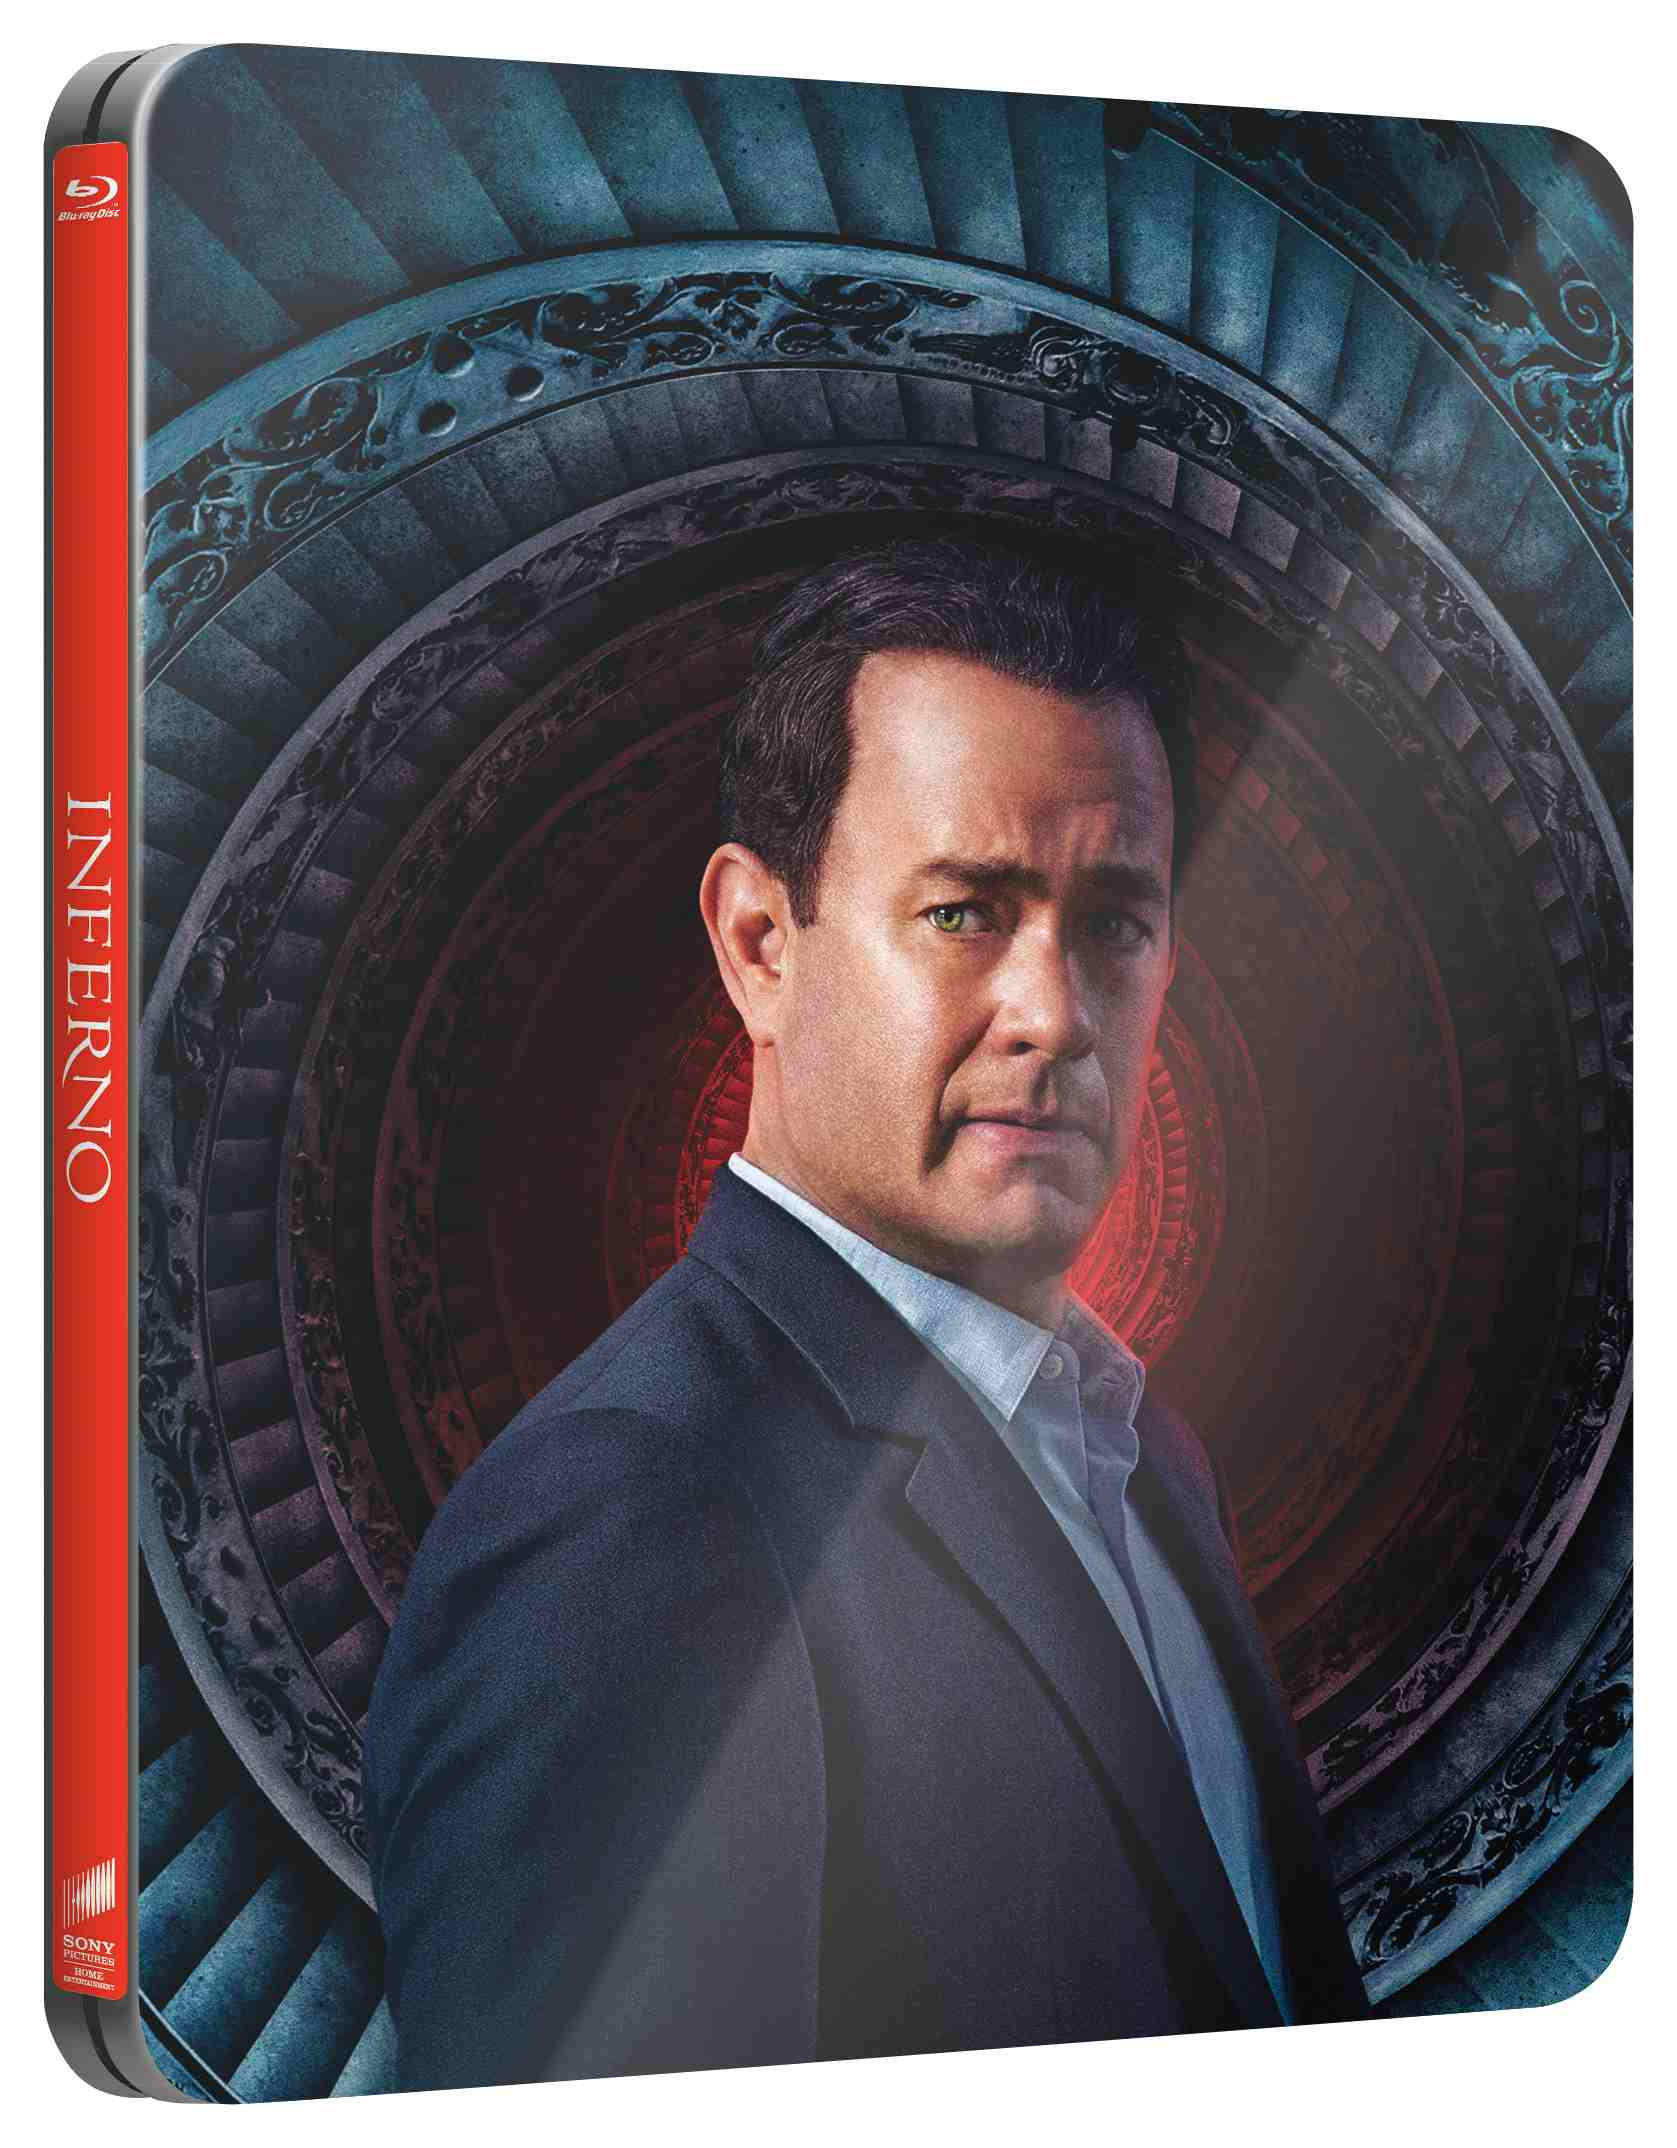 INFERNO (2 BD) - Blu-ray STEELBOOK